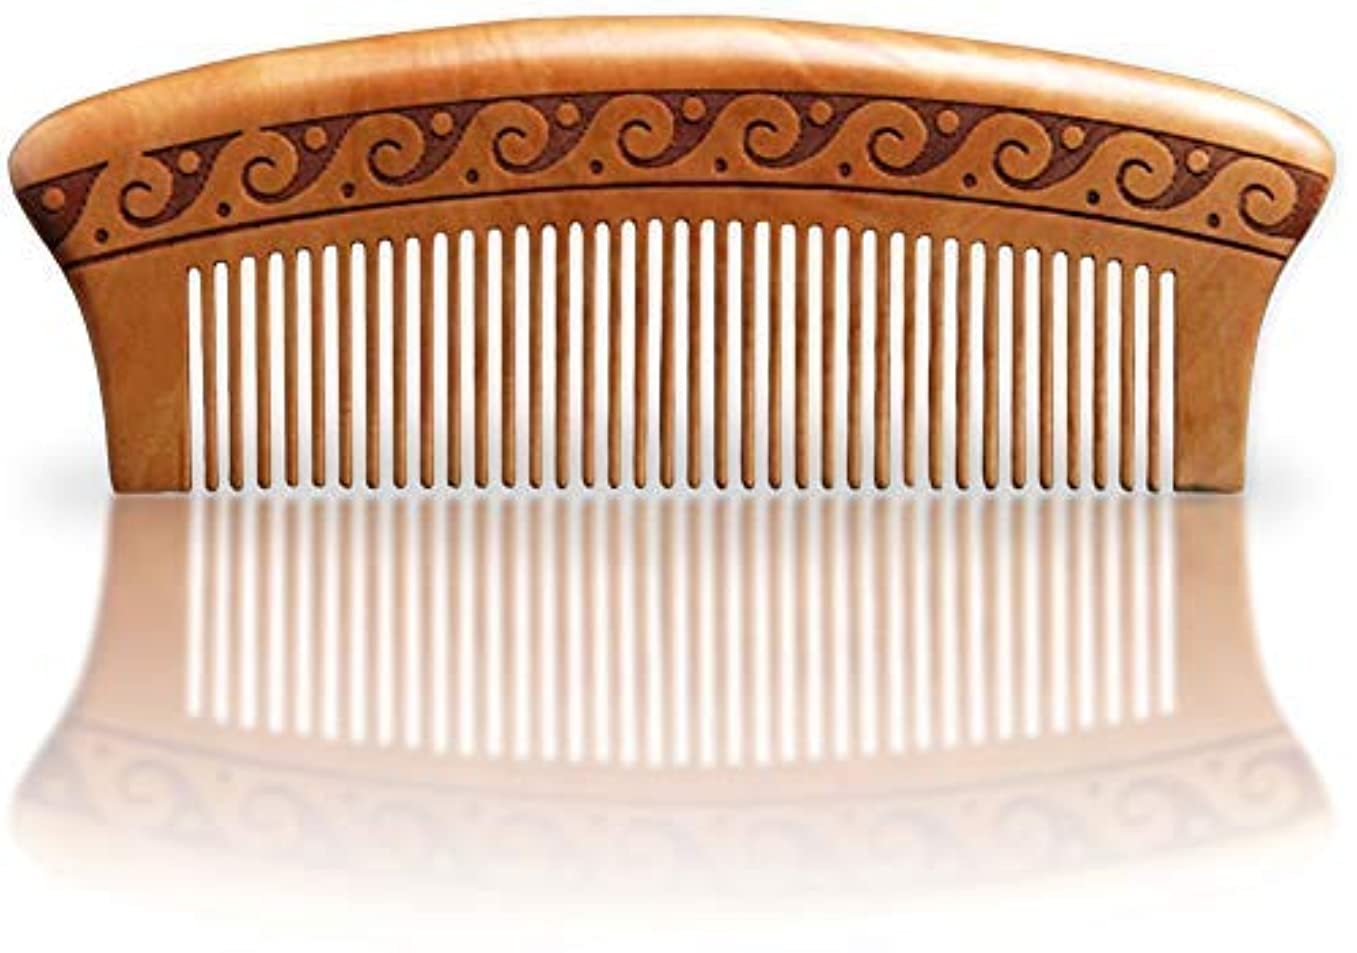 ペネロペ木製ワイドBRIGHTFROM Wooden Hair Comb, Anti-Static, Detangling, Great for Hair, Beard, Mustache, Natural Peach Wood [並行輸入品]